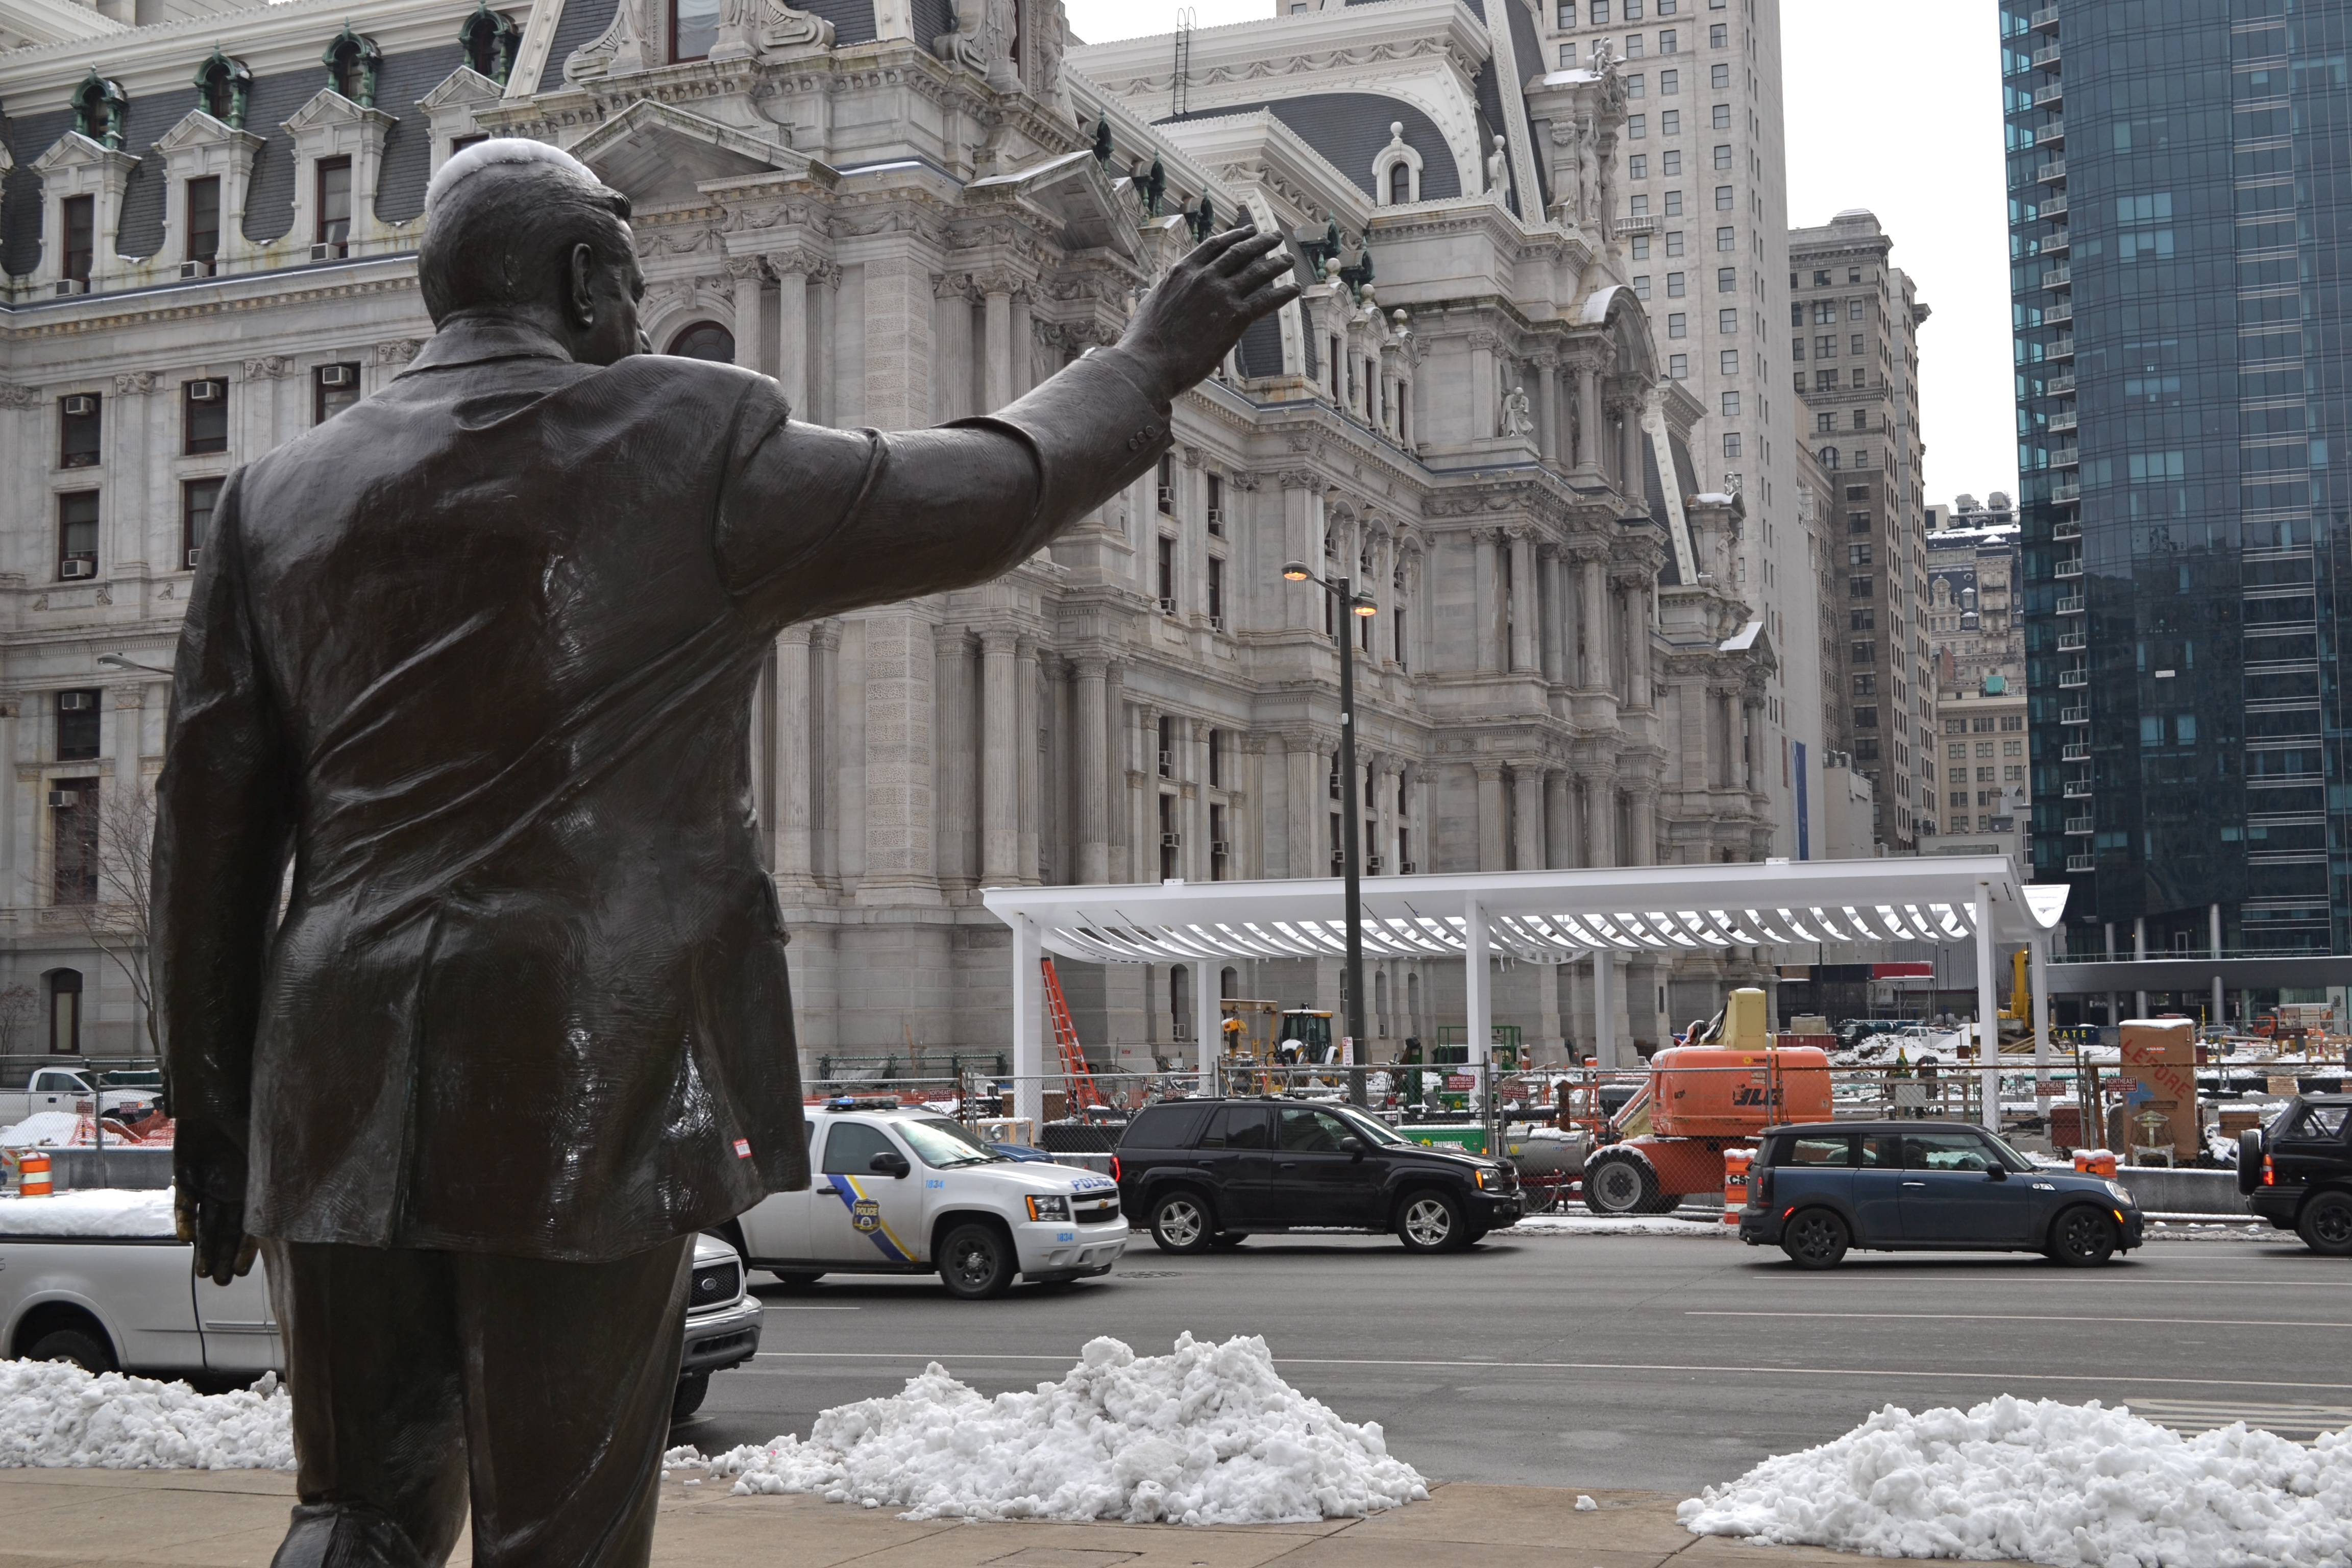 The cafe structure sits directly across from the Municipal Services Building and the Frank Rizzo statue